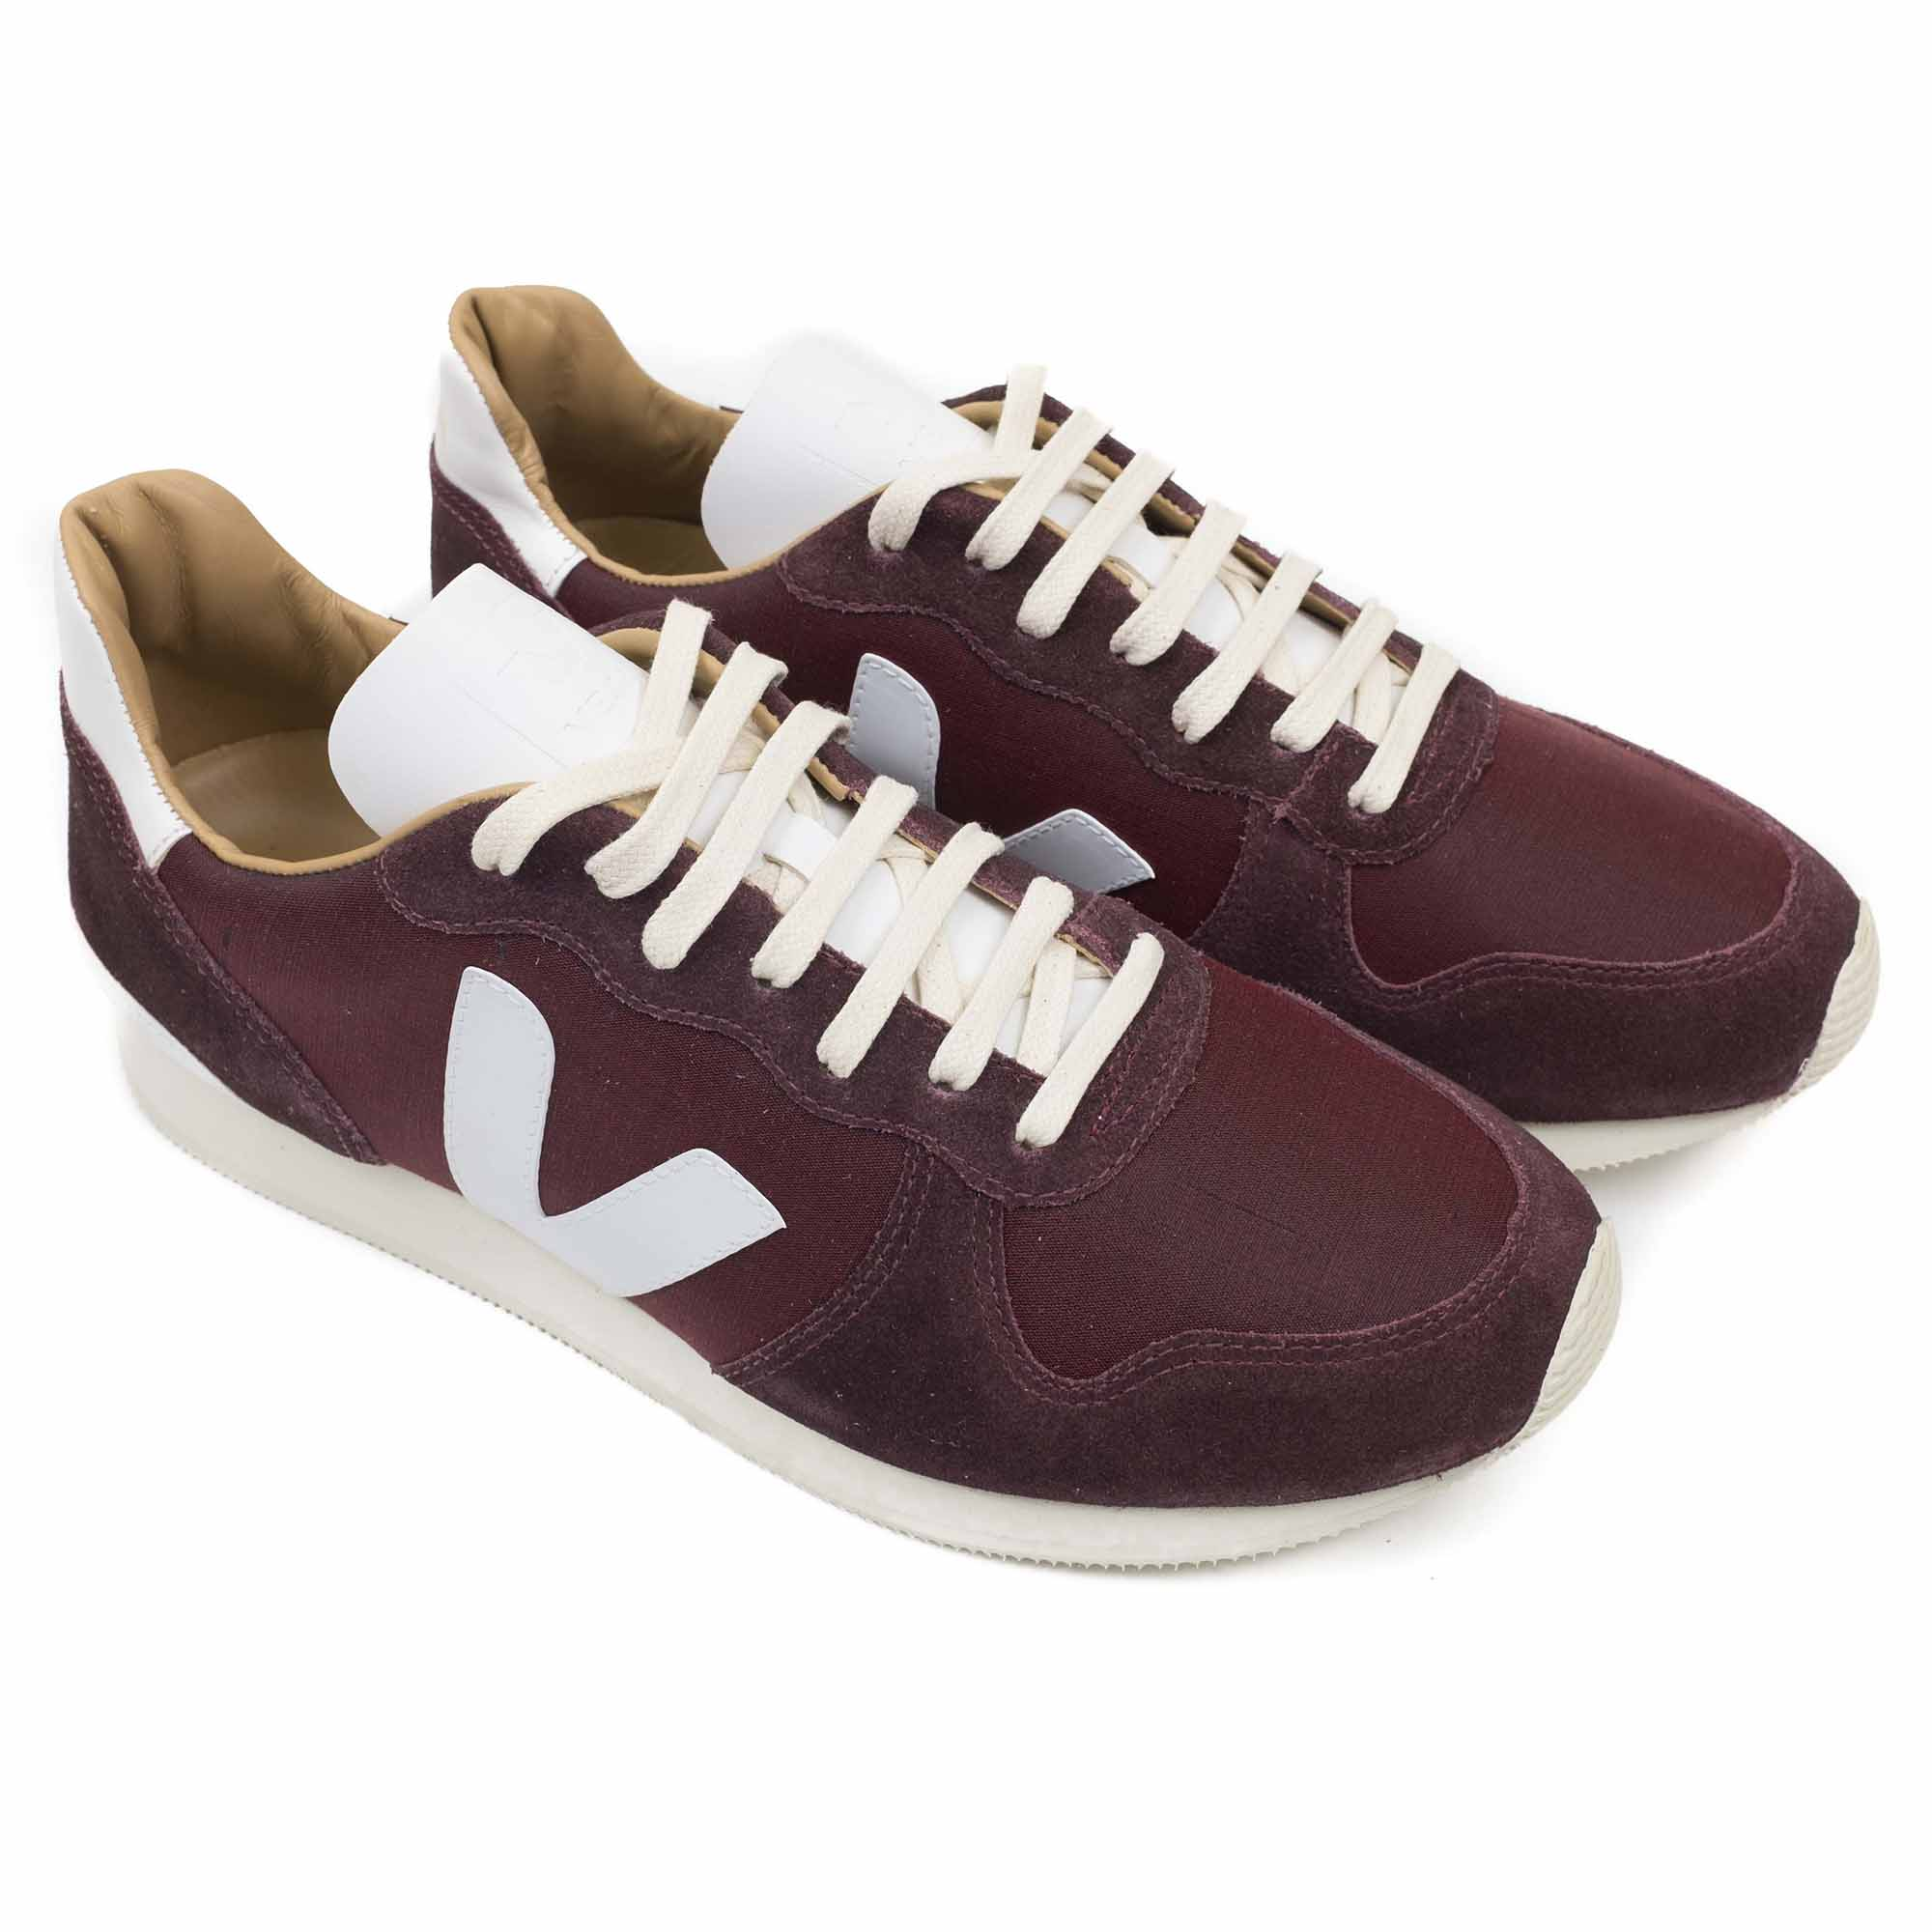 Veja Holiday Bastille Tafta - Burgundy White